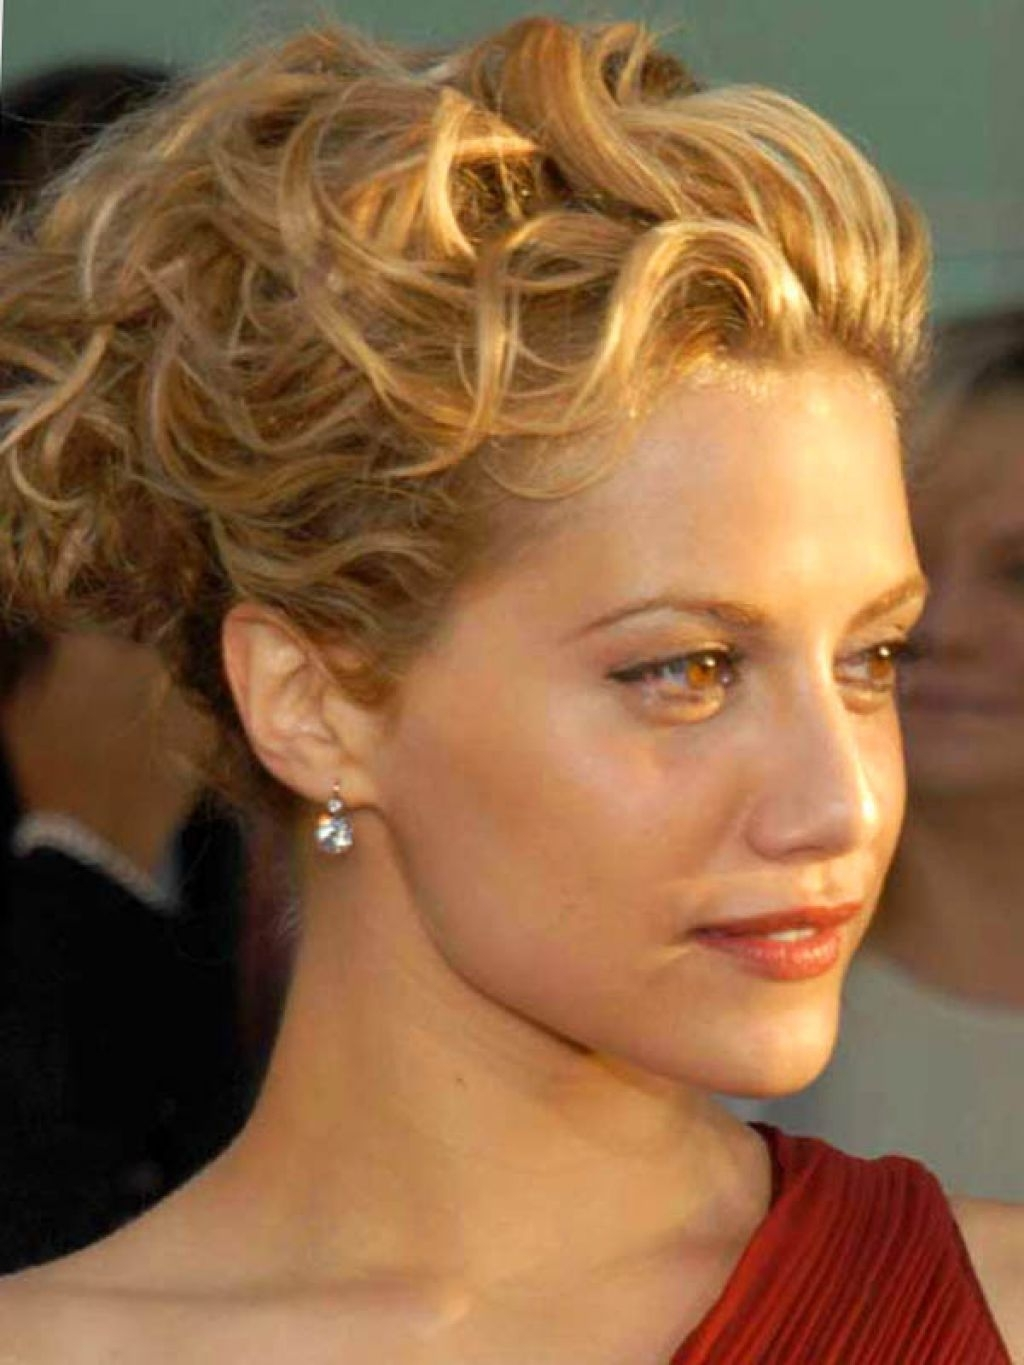 Medium Length Hair Curly Updo Hairstyles – Popular Long Hairstyle Idea For Updos For Medium Length Curly Hair (View 3 of 15)